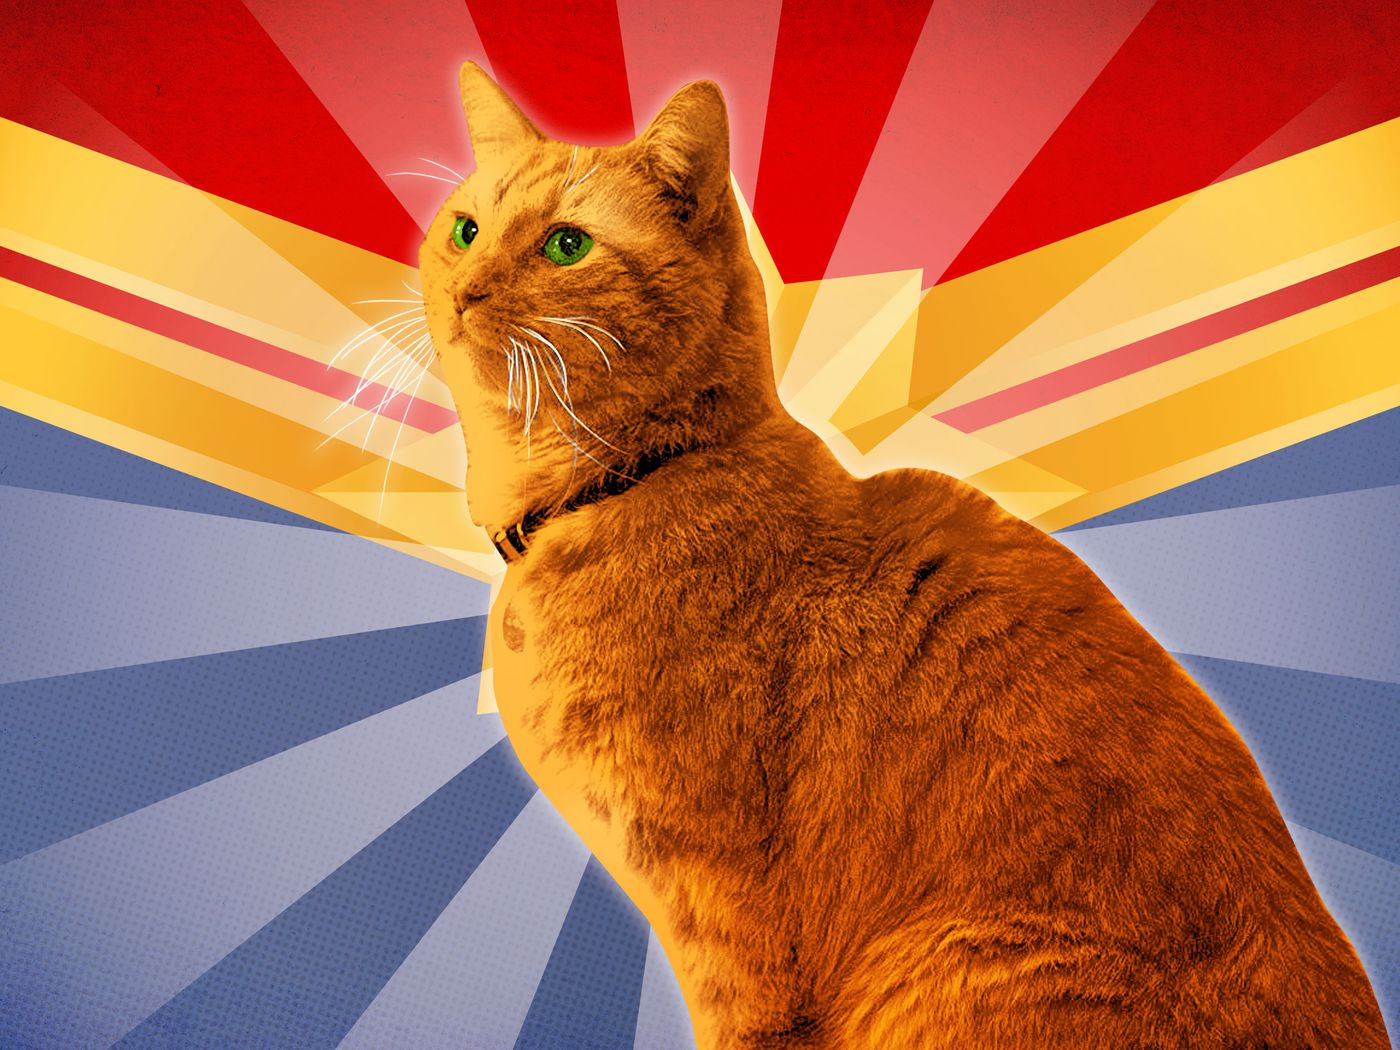 Super Cat An Unlikely Star Emerges In Captain Marvel The Ringer